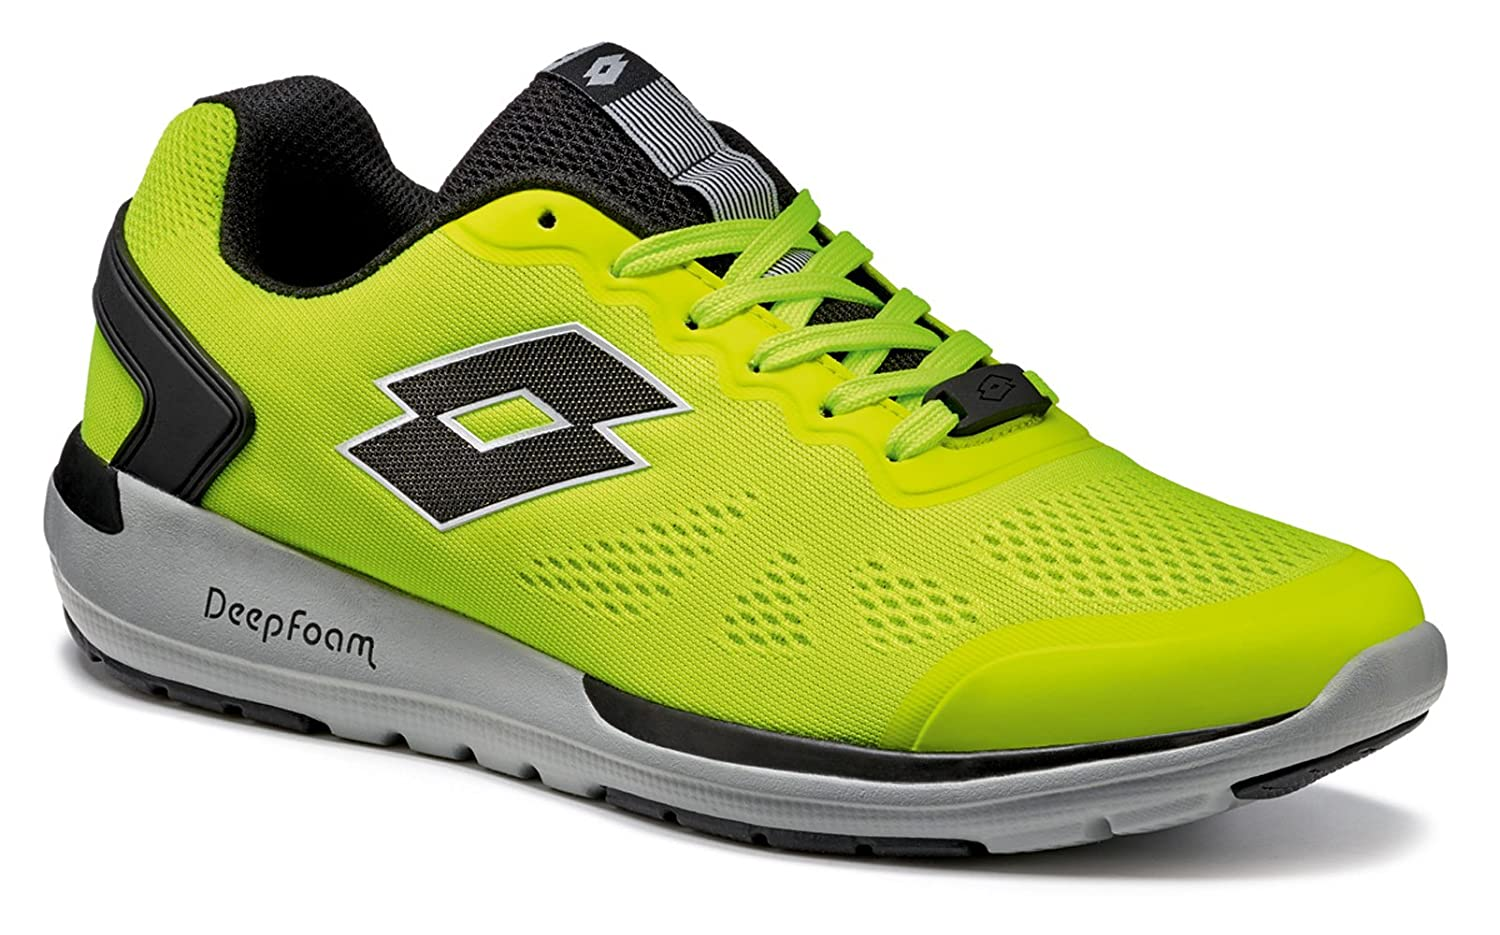 Lotto - Zapatillas de running para hombre amarillo yellow safety/black 46 EU